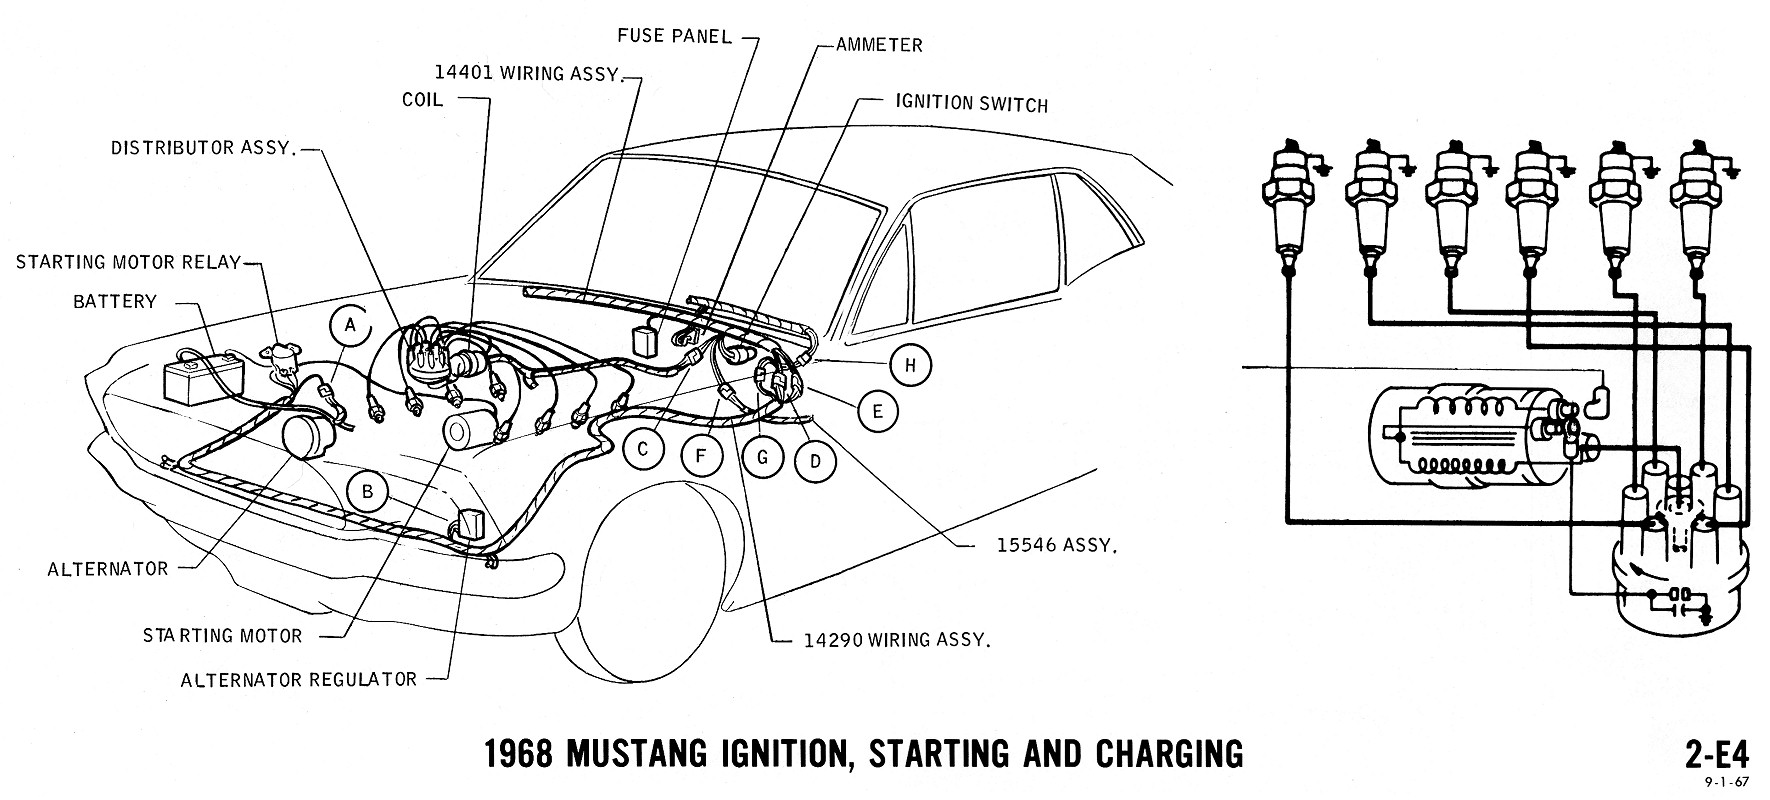 1968 mustang wiring diagram ignition starting charging 2 1968 mustang wiring diagrams and vacuum schematics average joe 1967 mustang ignition wiring diagram at bayanpartner.co